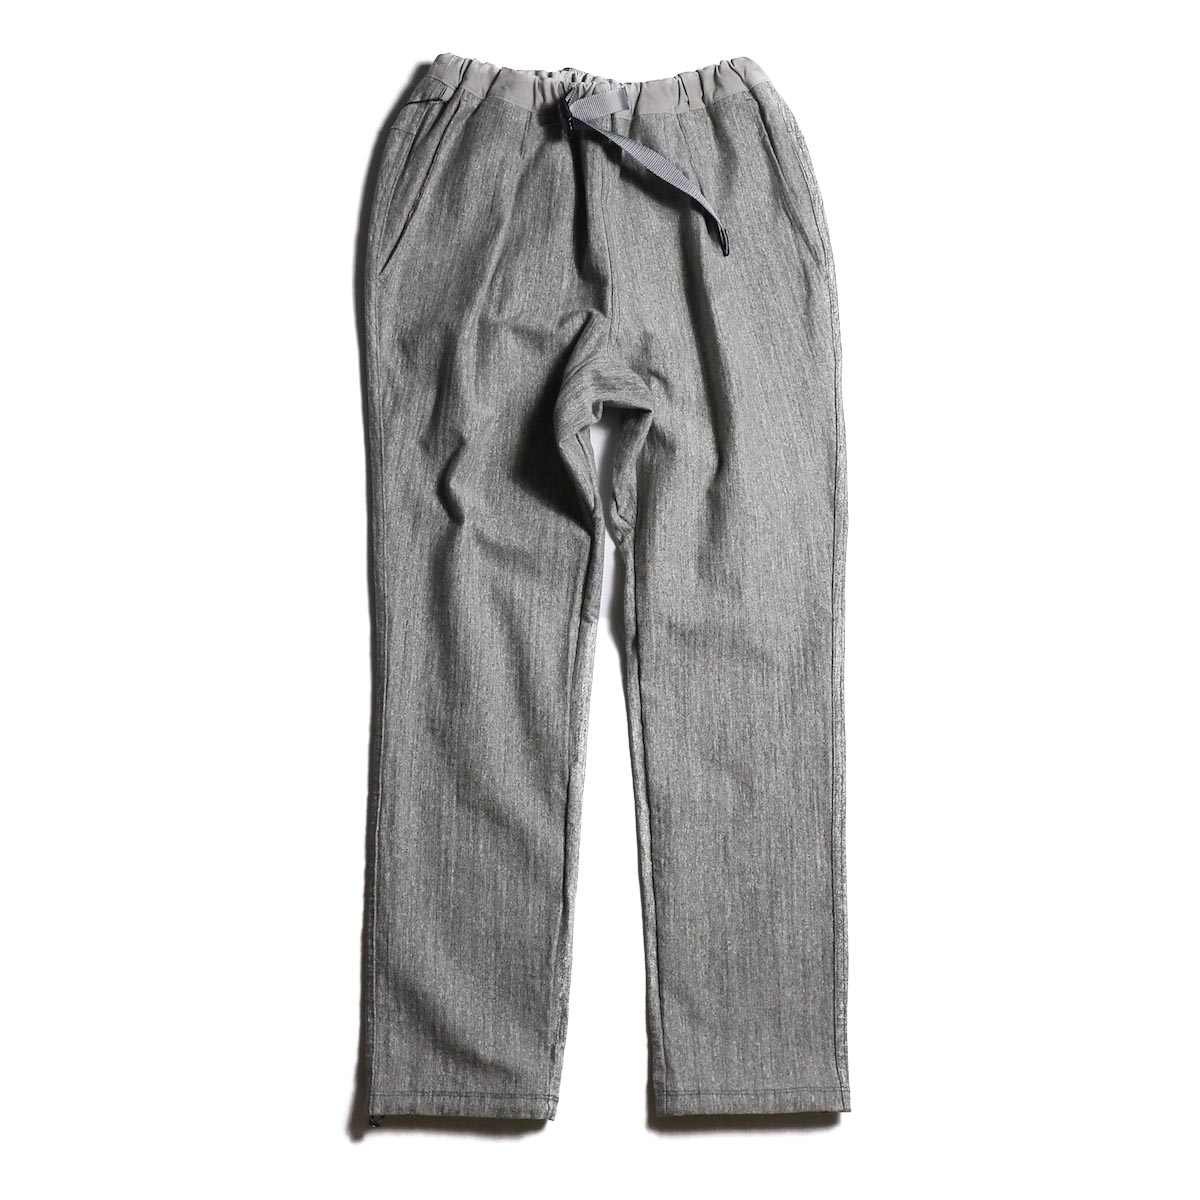 CURLY / DELIGHT CLIMBING TROUSERS with RAIN DELIGHT -GRAY